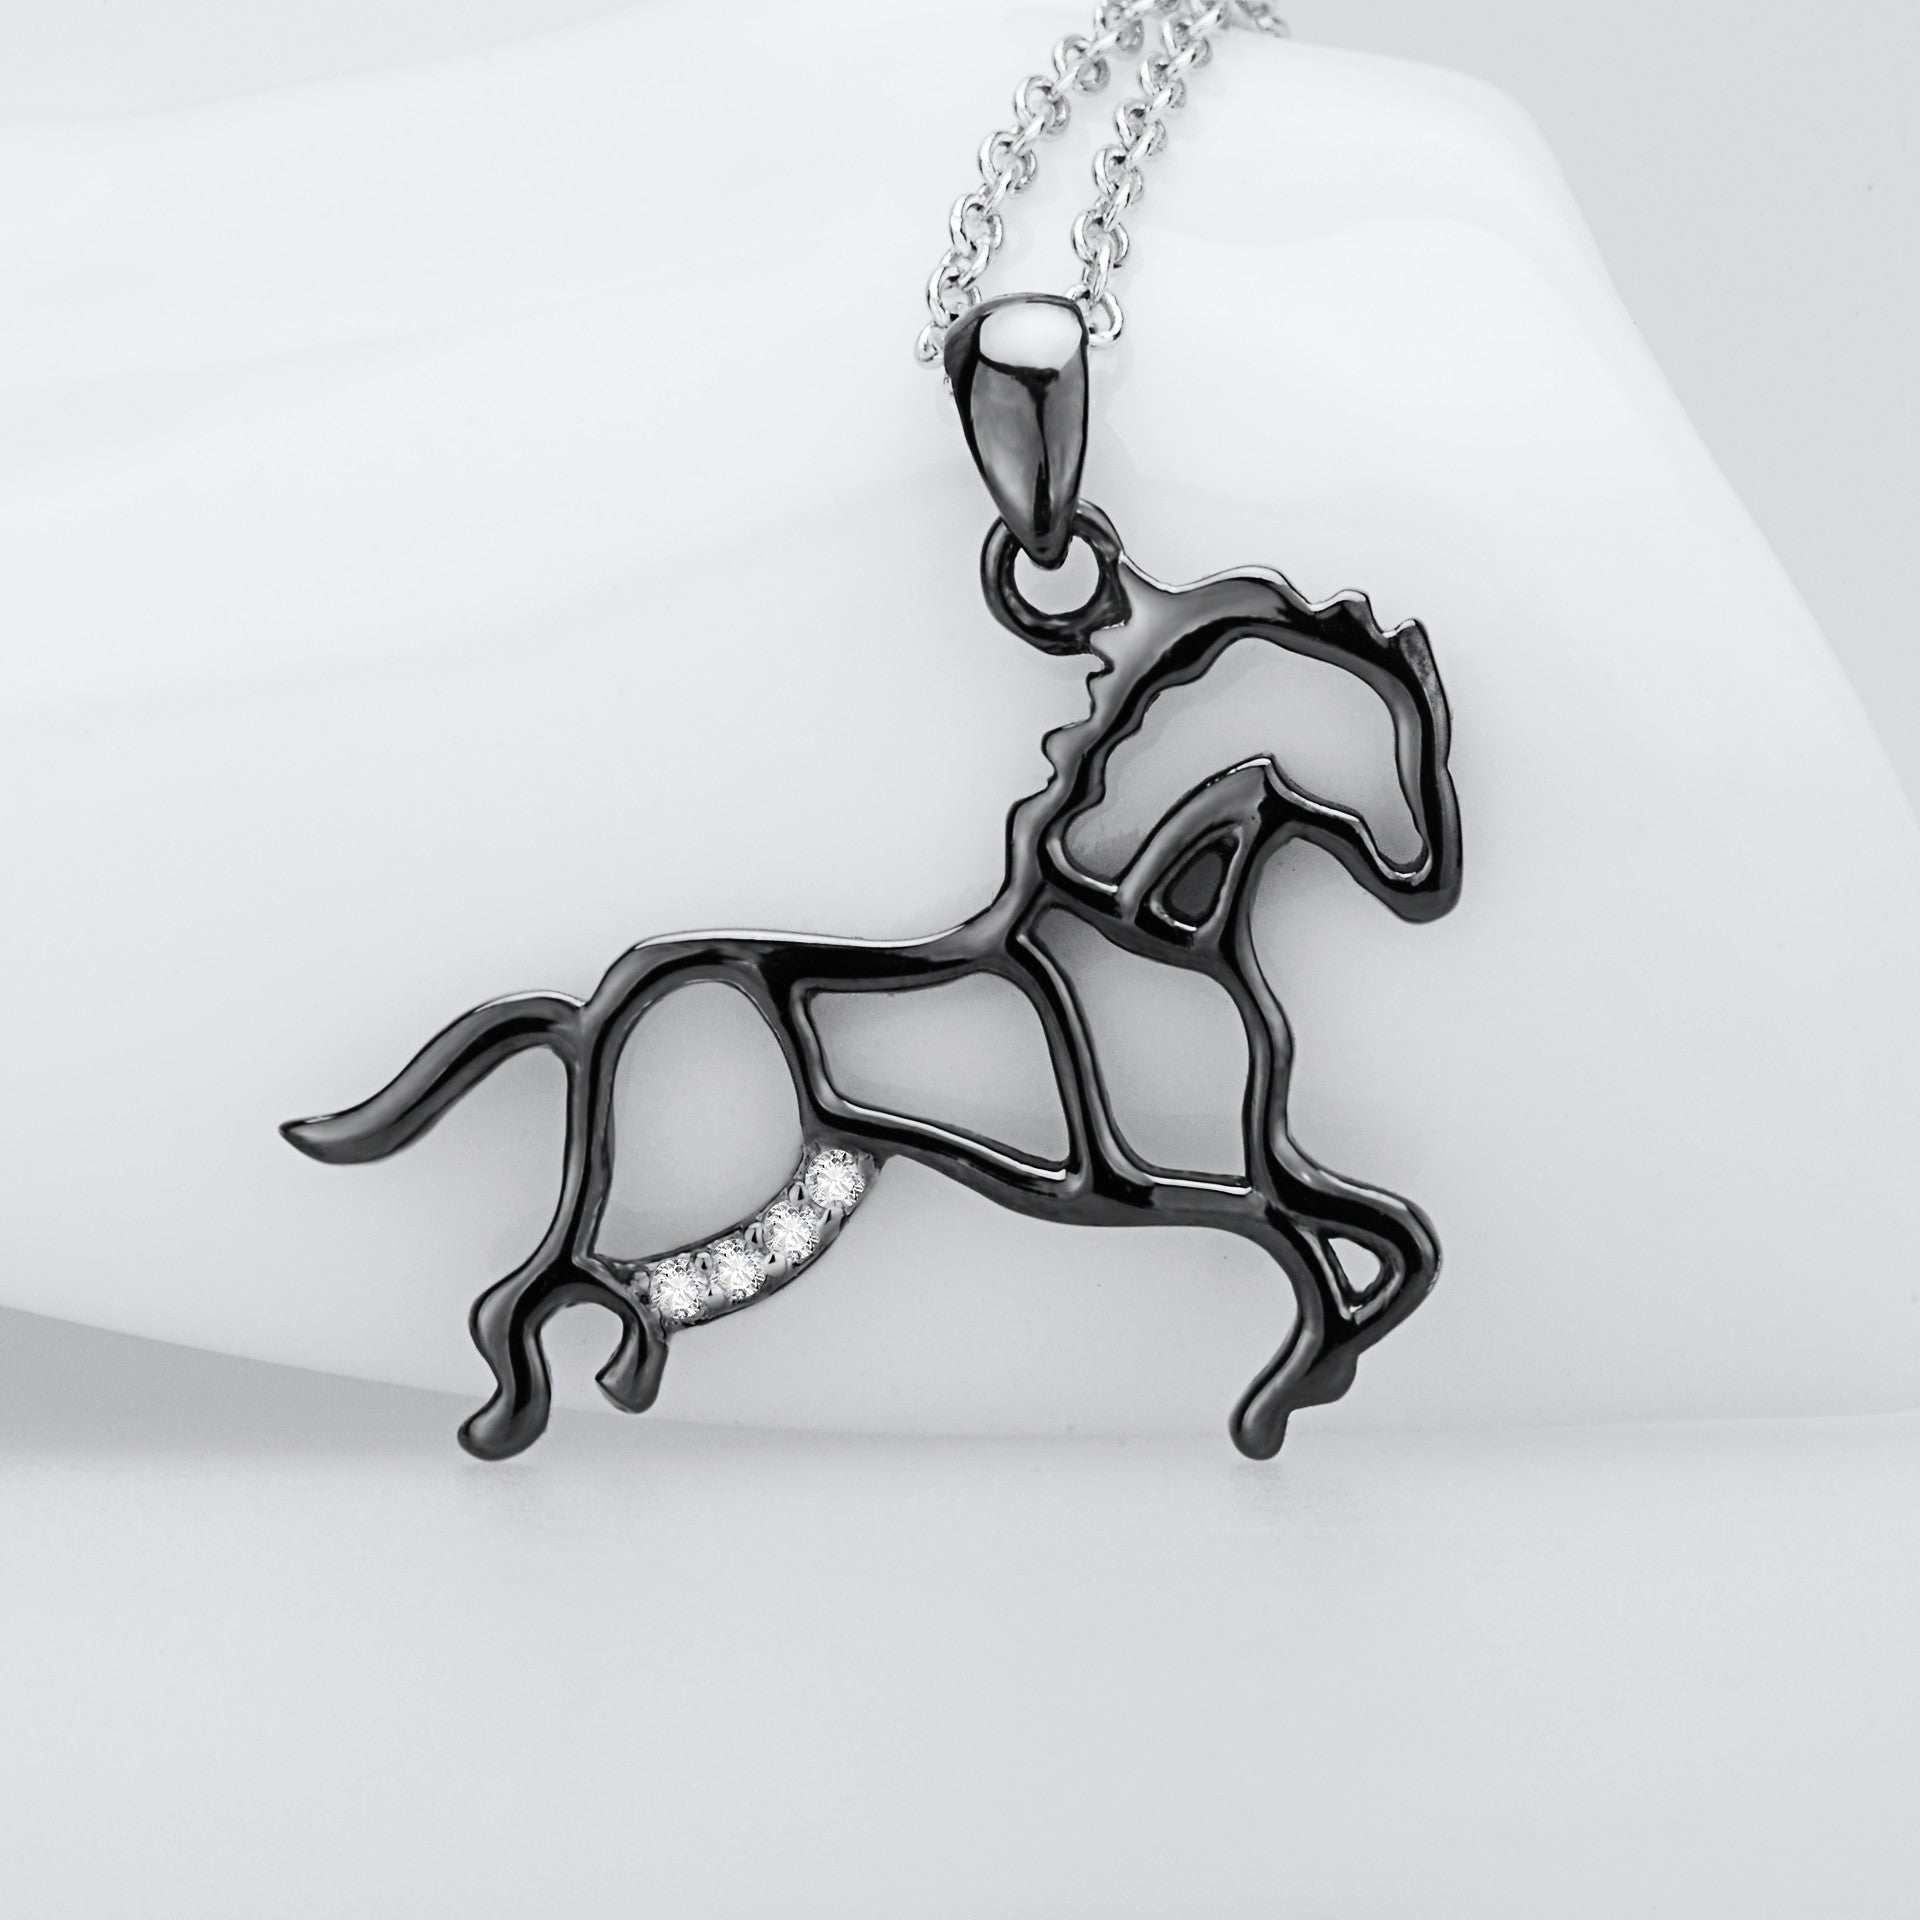 Wild horse - S925 Sterling Silver Necklace